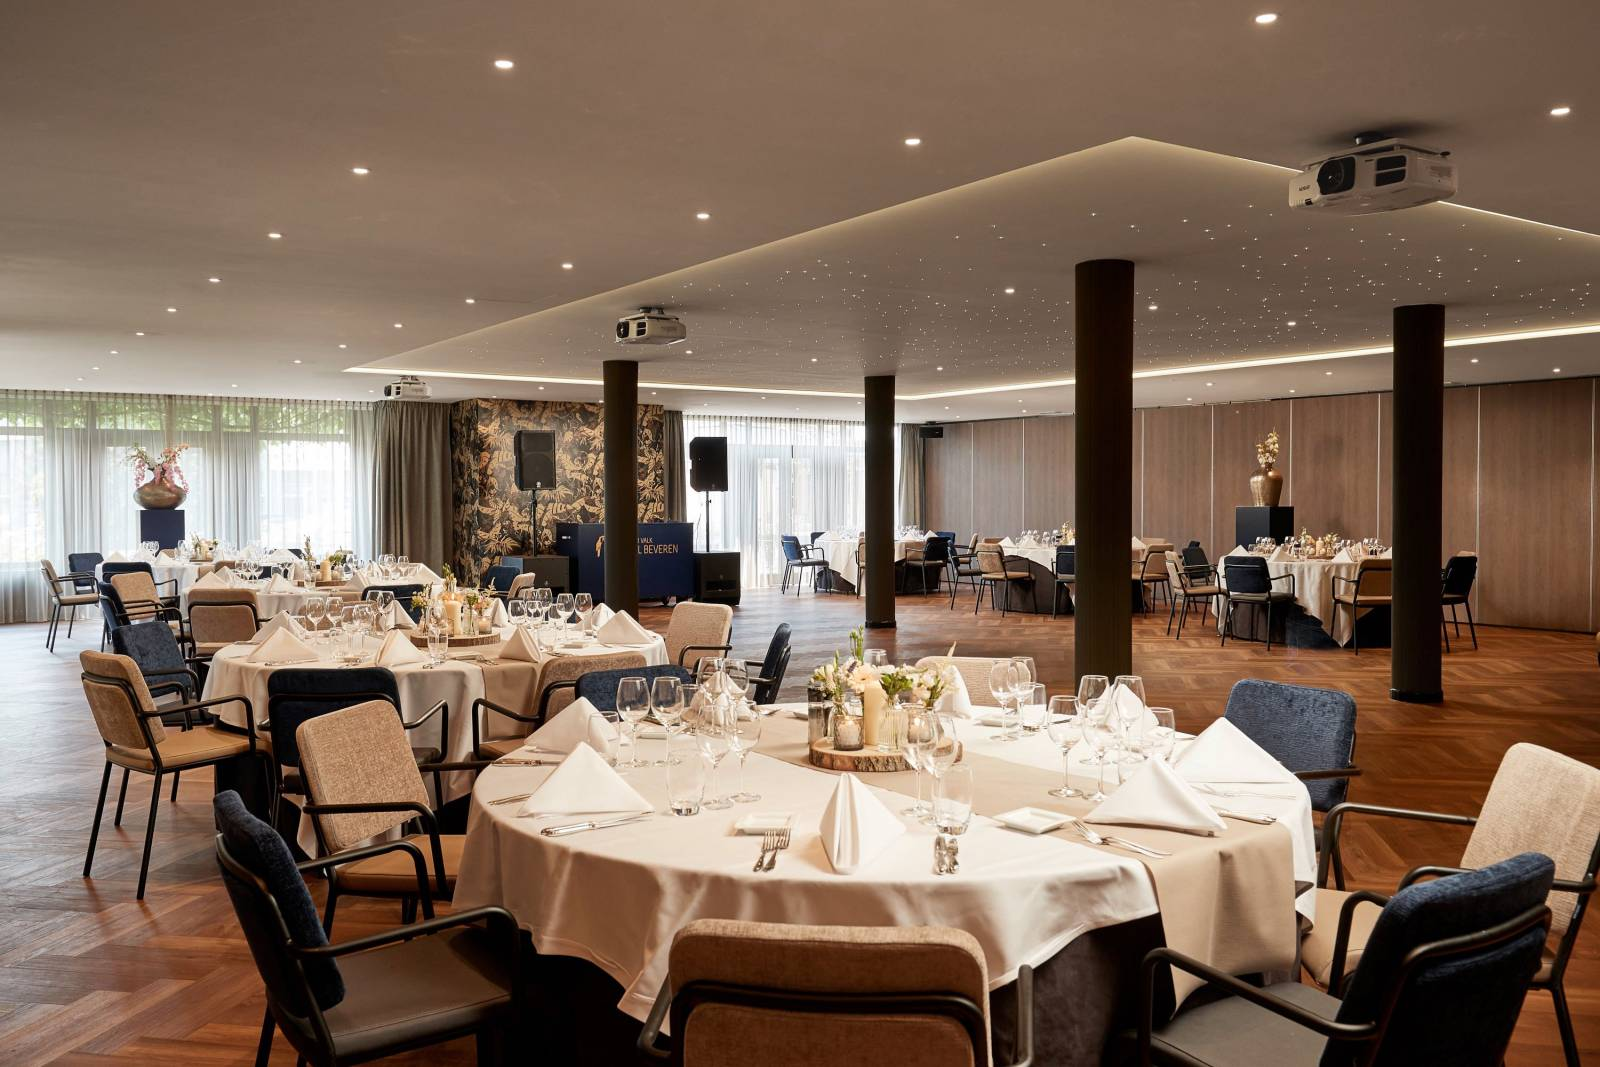 Van der Valk hotel Beveren - Feestzaal - Trouwzaal - House of Weddings - 7